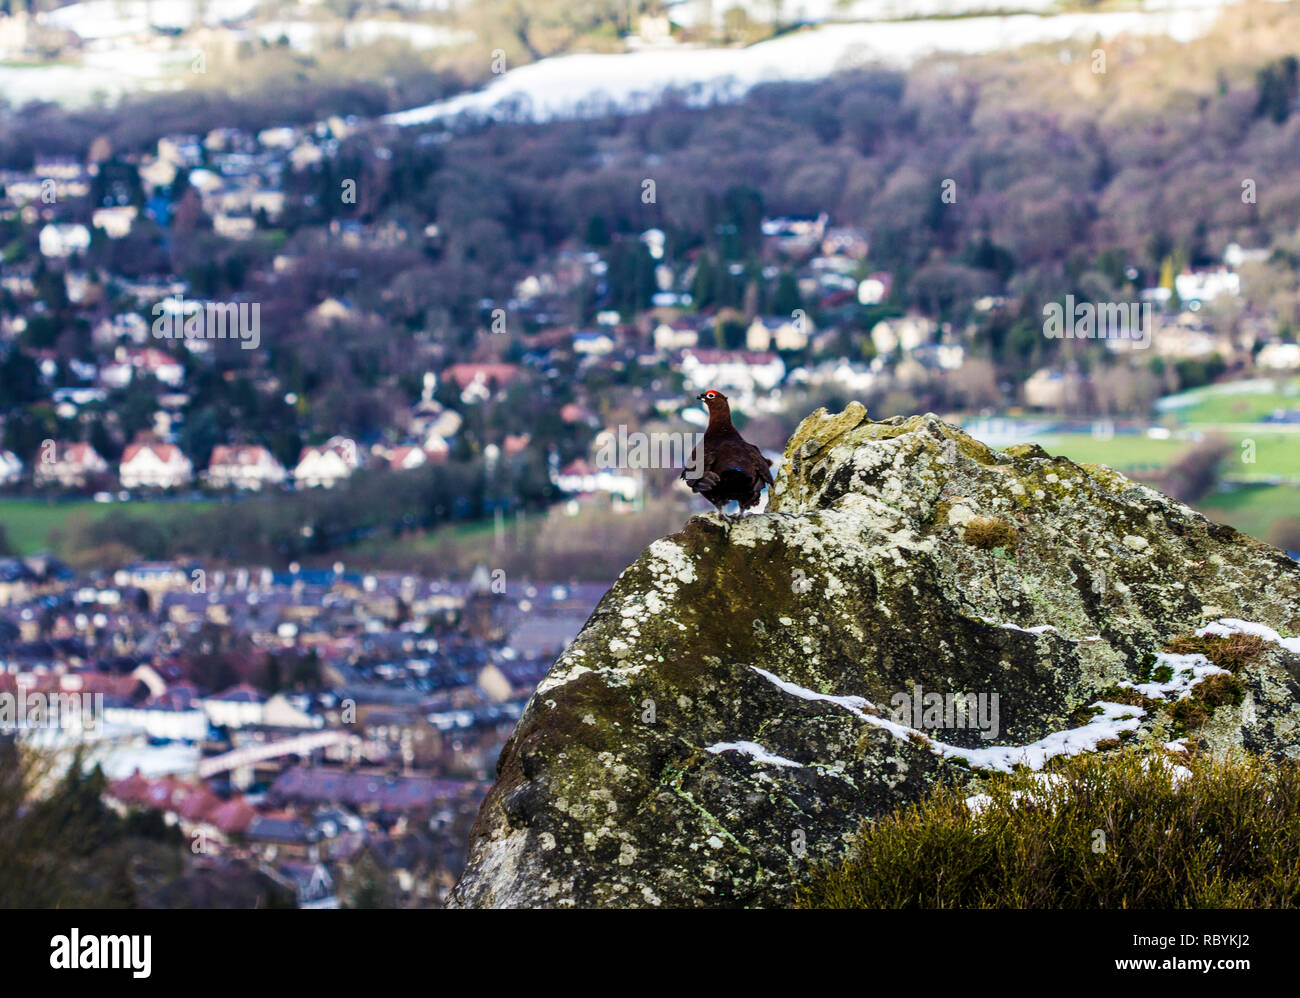 Red Grouse (Lagopus lagopus) sitting on a rock overlooking Ilkley from Ilkley Moor, West Yorkshire - Stock Image